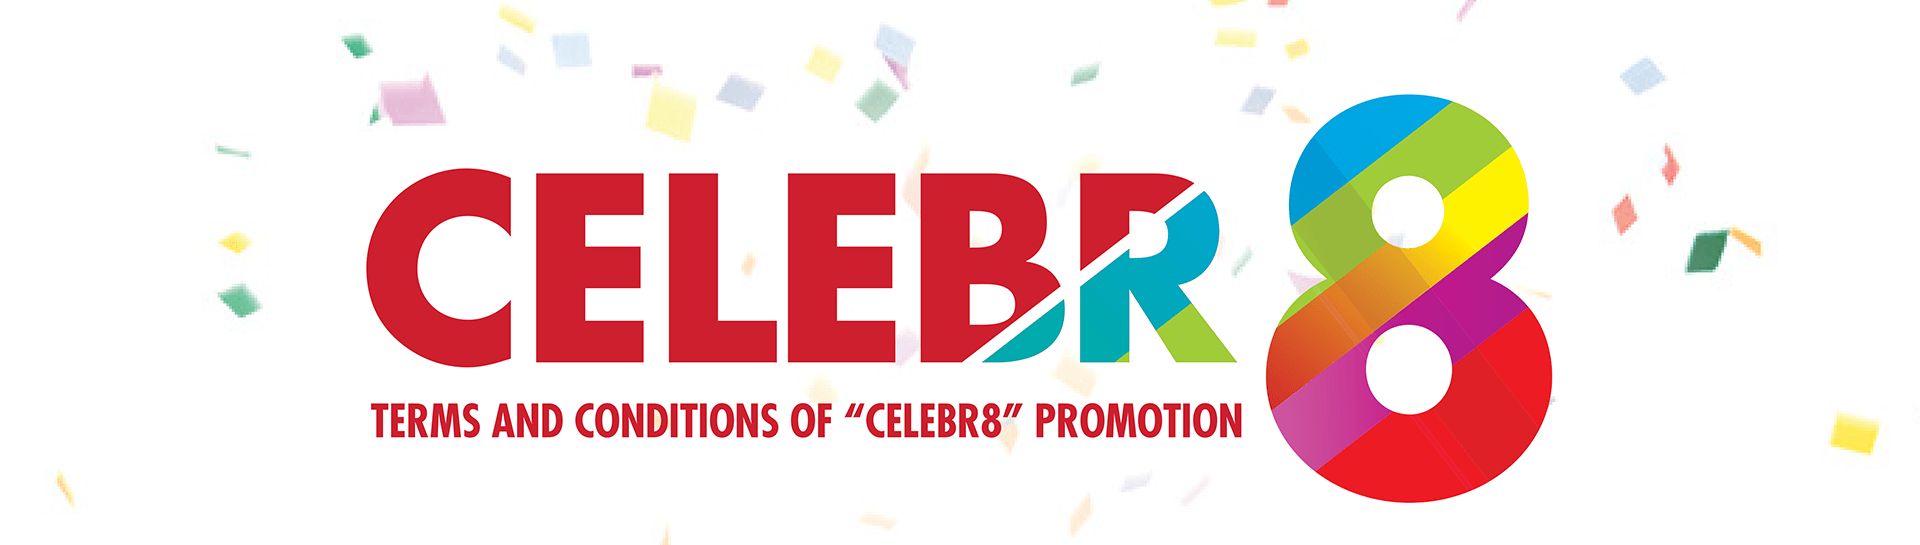 Celebr8 Terms & Conditions